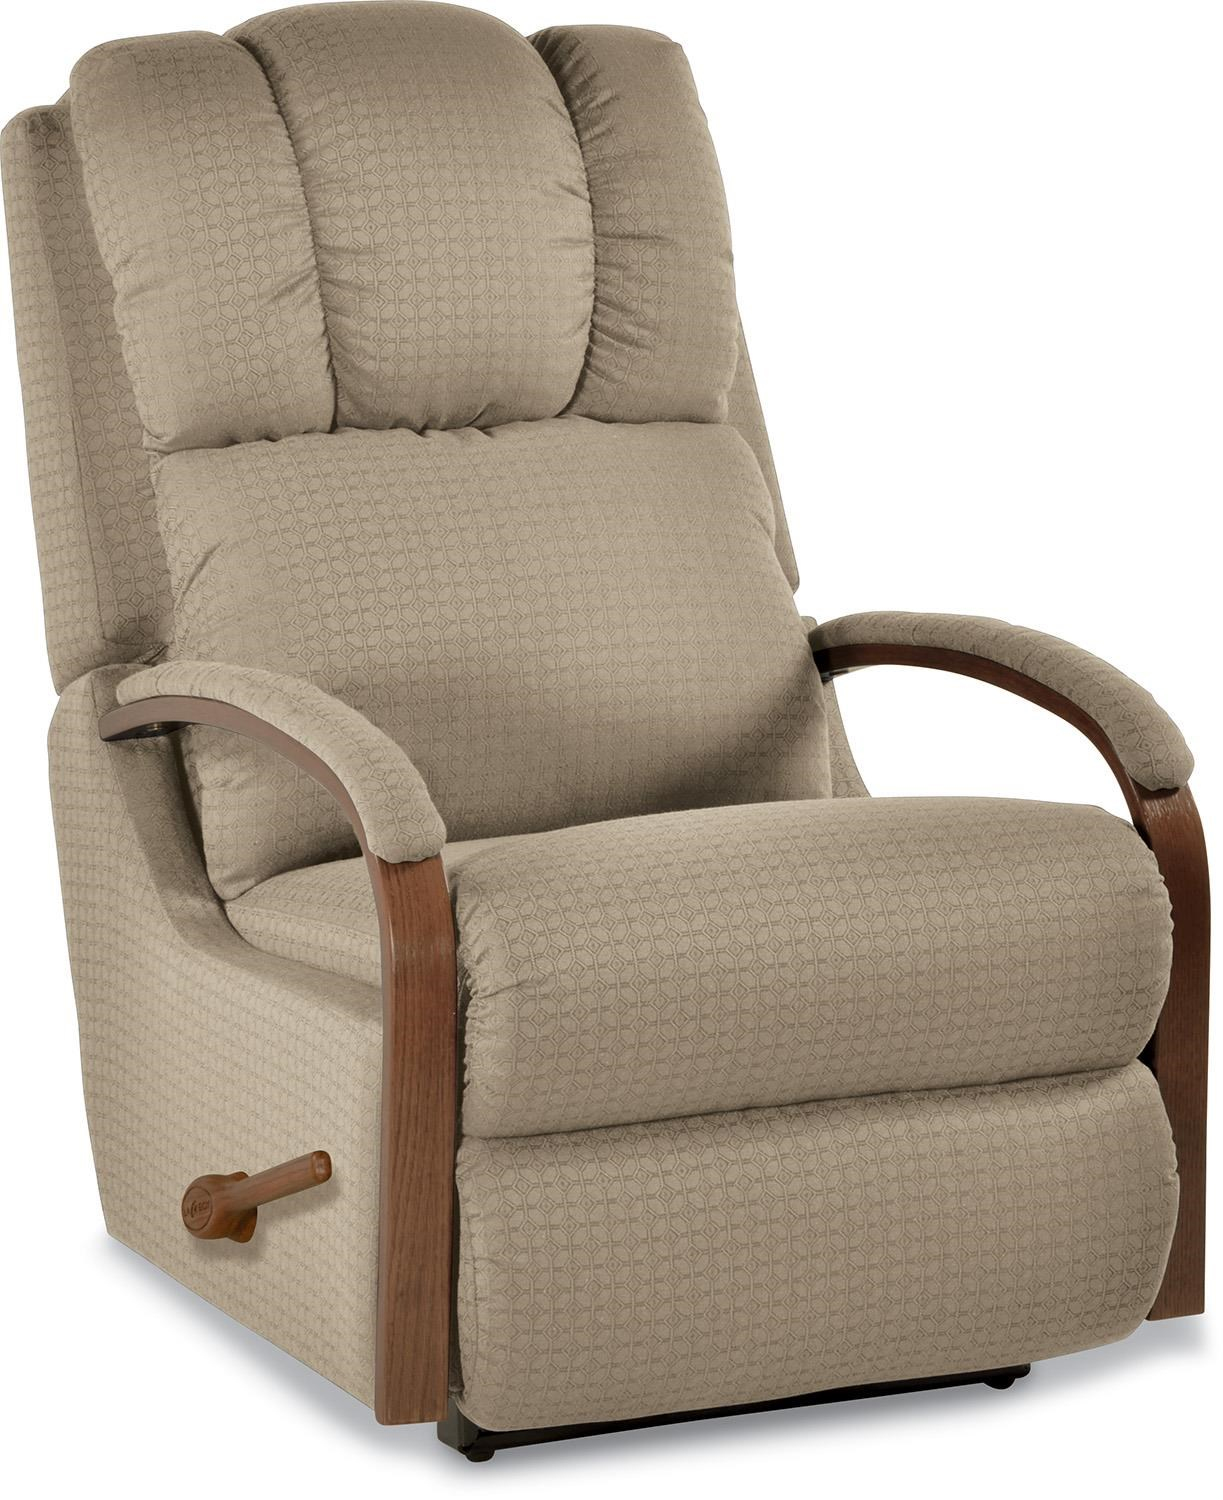 lazy boy recliner chair gliding cushion replacement la z recliners harbor town reclina way reclining boulevard home furnishings